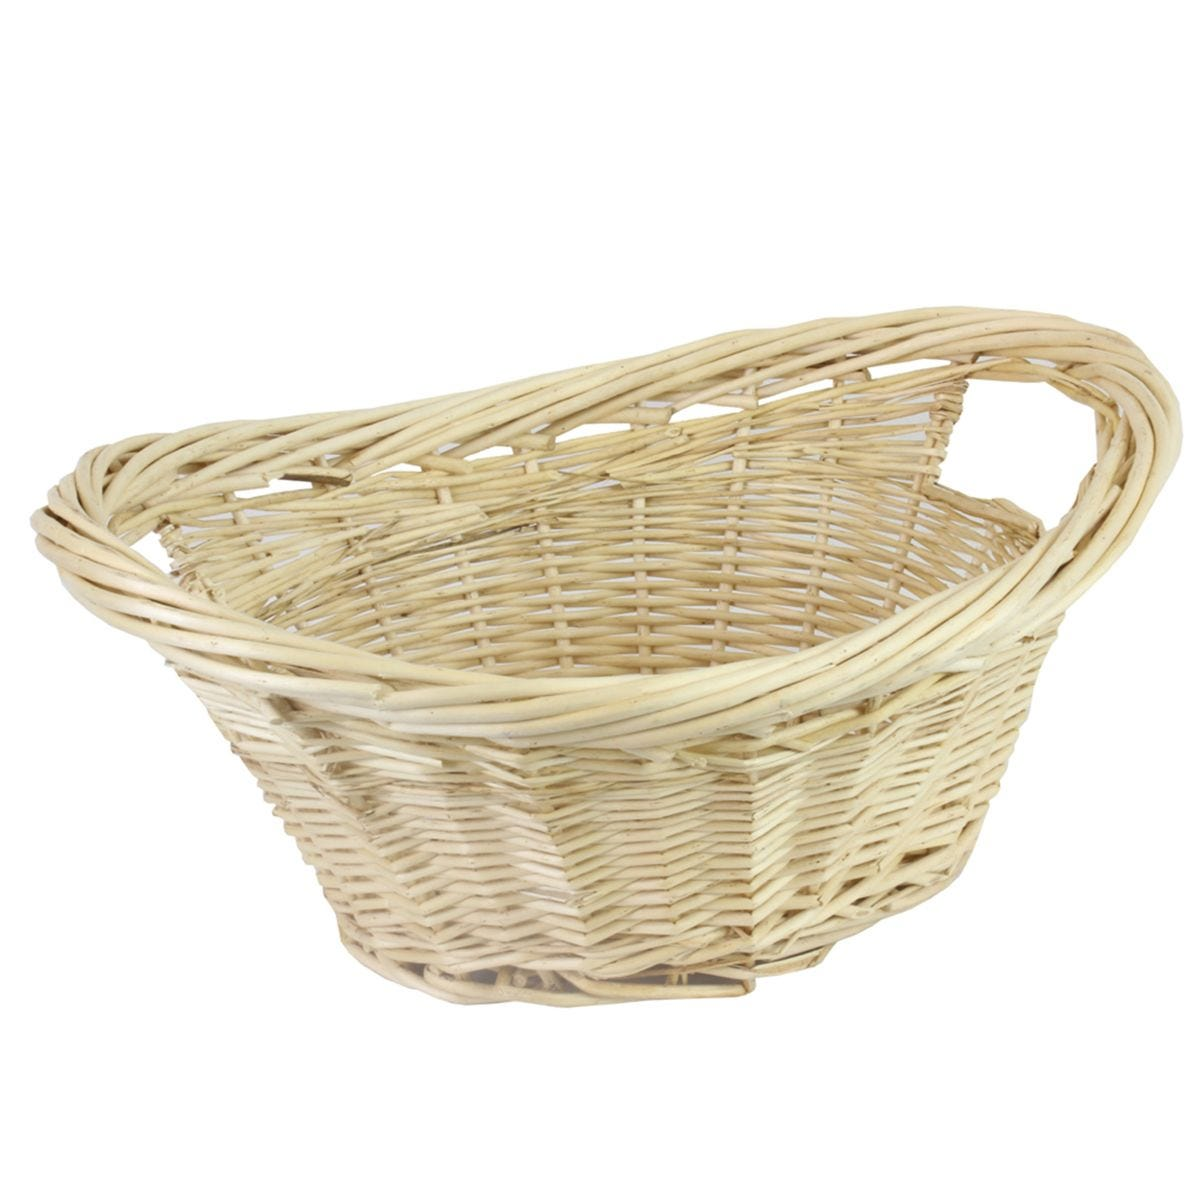 JVL Willow All Purpose Laundry Basket with Inset Handles Wood 58 x 43 x 25 cm